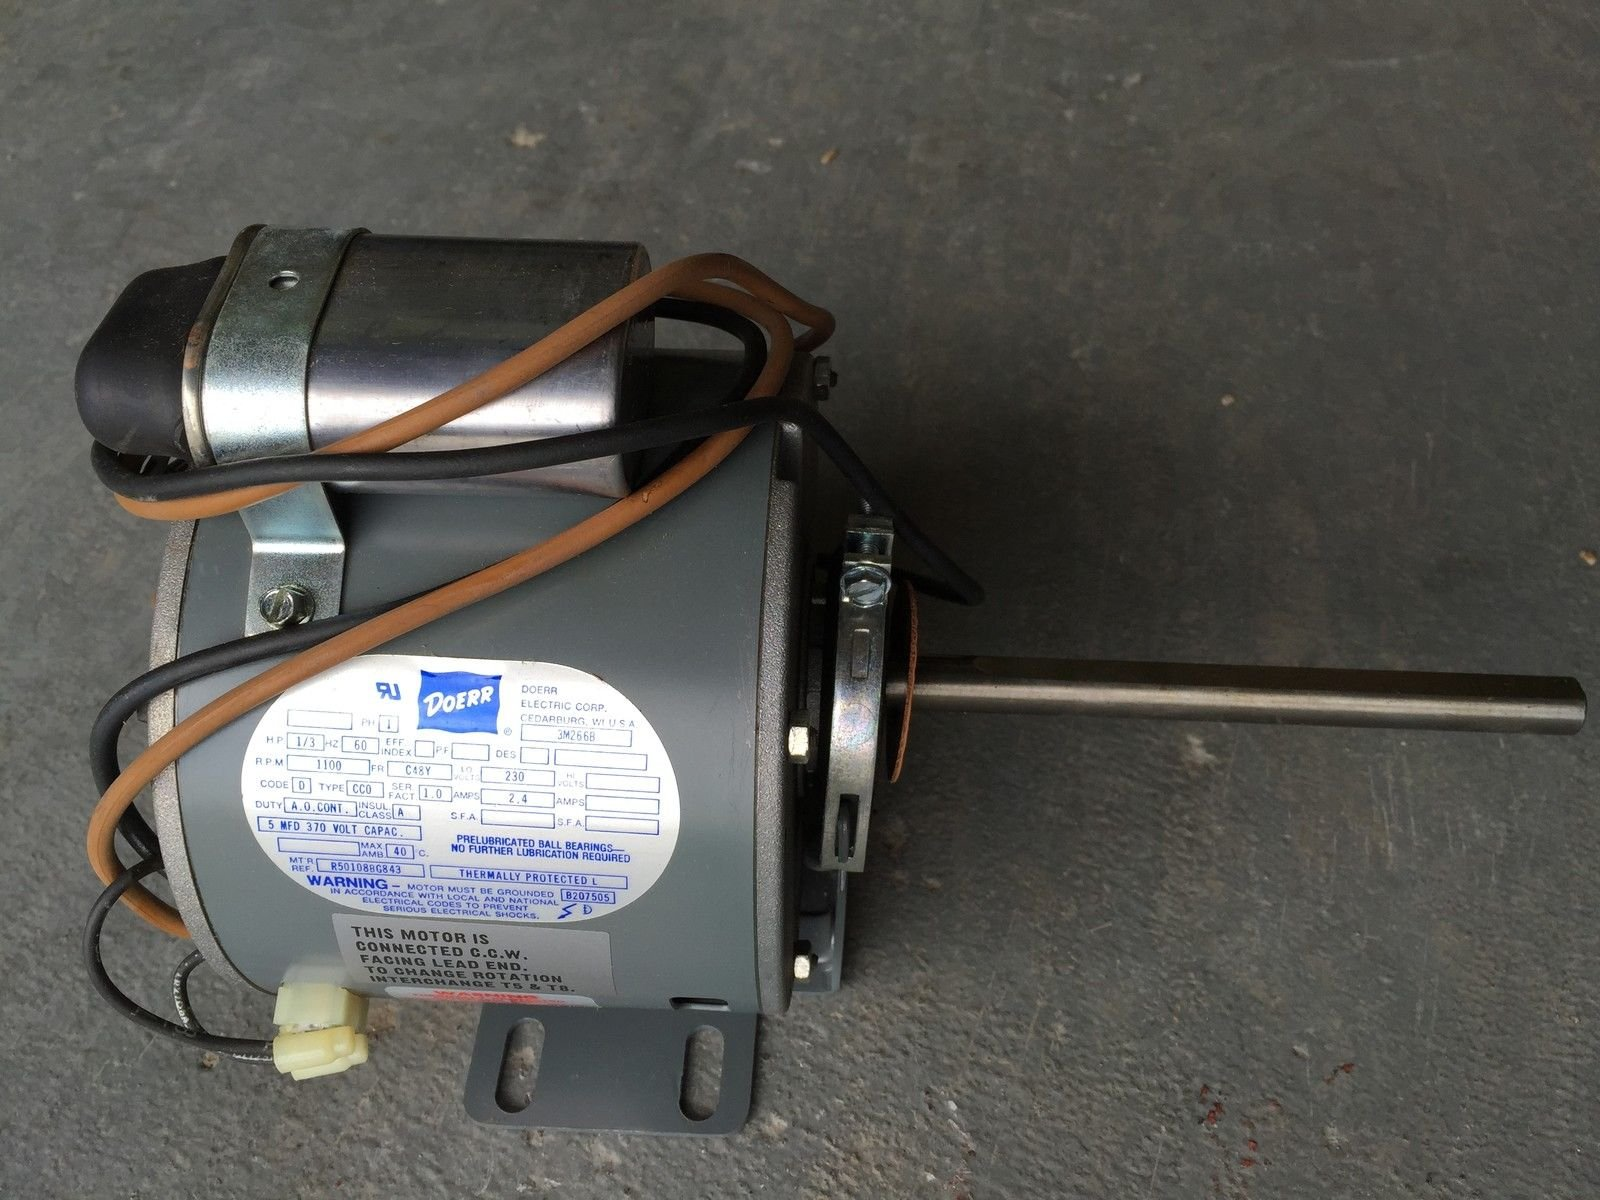 3M266, DOERR, 1/3 HP, PERM SPLIT CAP, 1100 RPM, 230V, 60 HZ, 1-PH, NEMA 48 FR